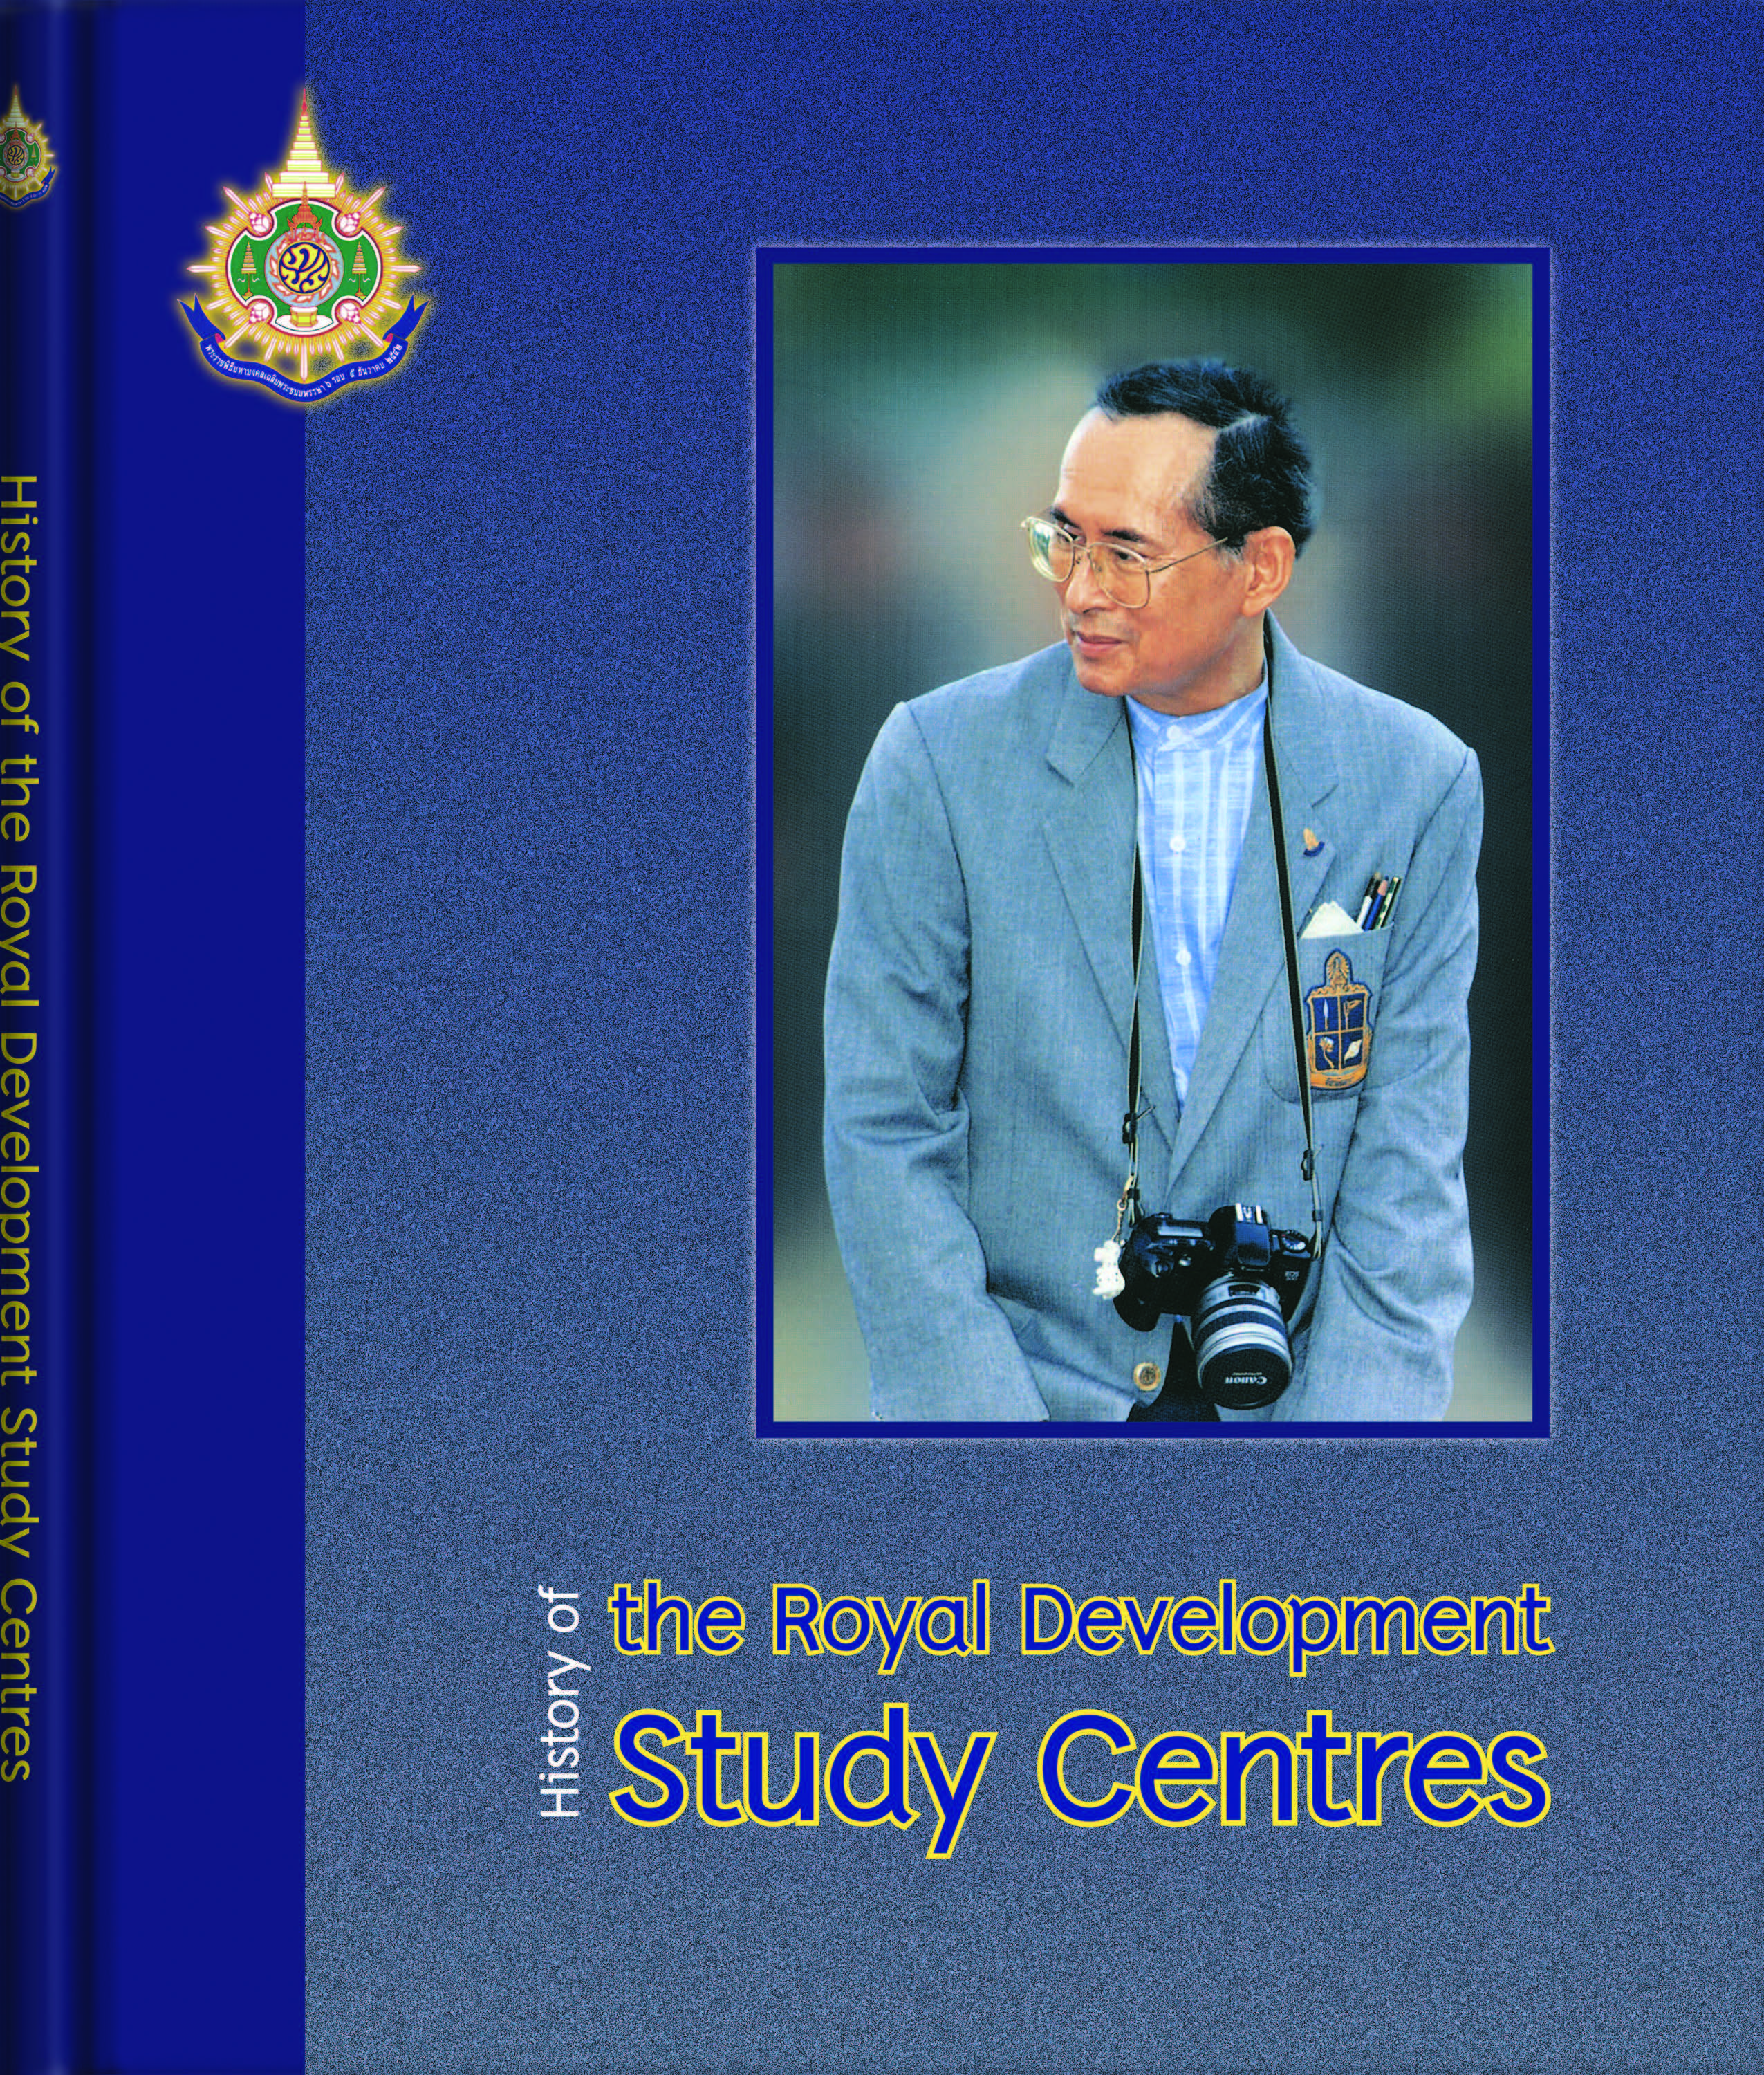 Histrory of the Royal Development Study Centres